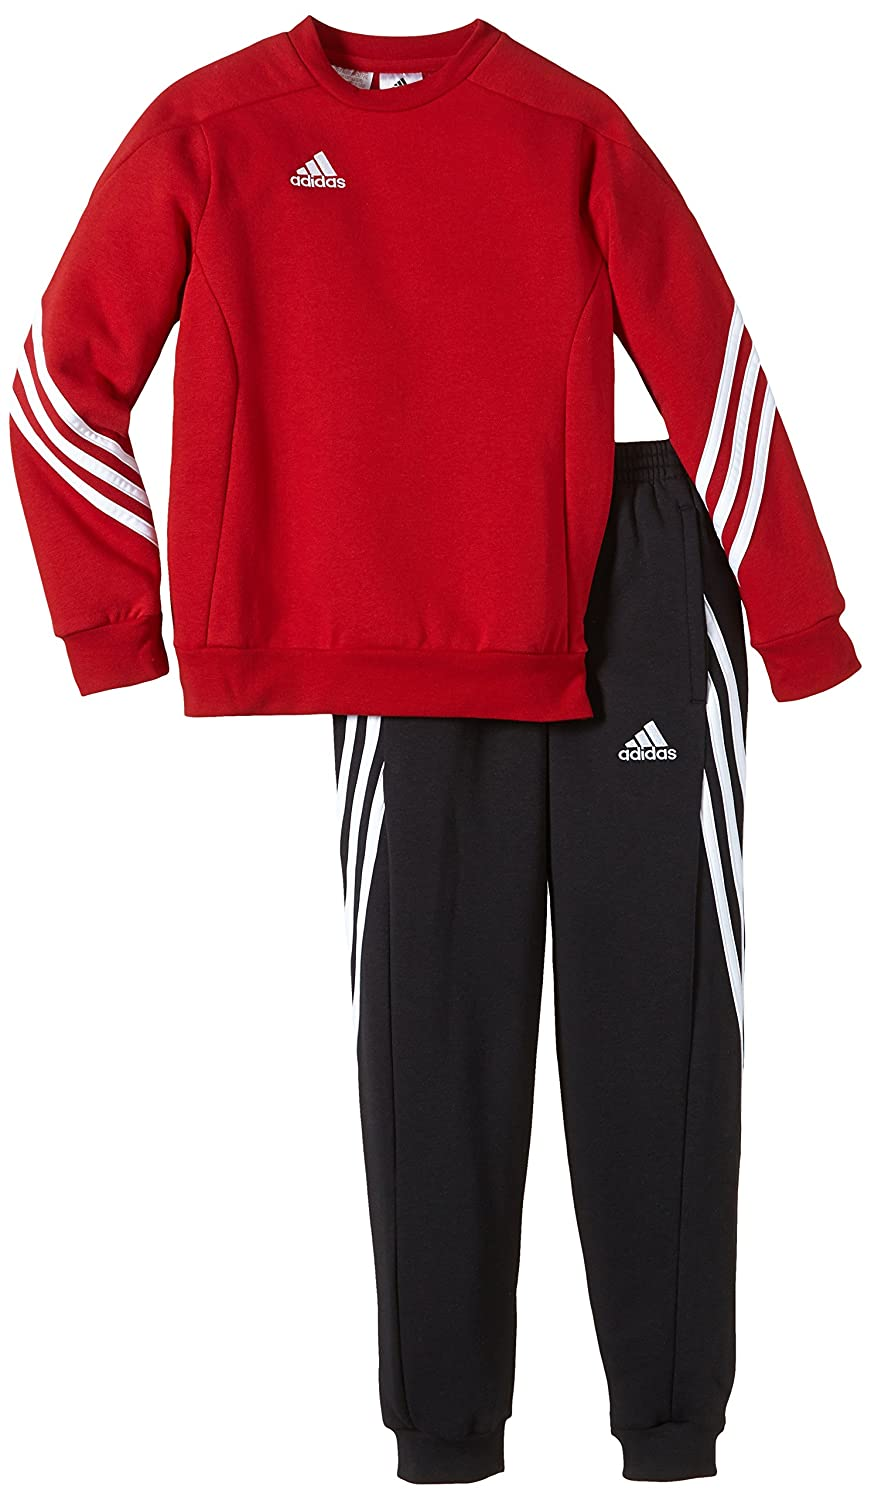 chandal adidas niña amazon